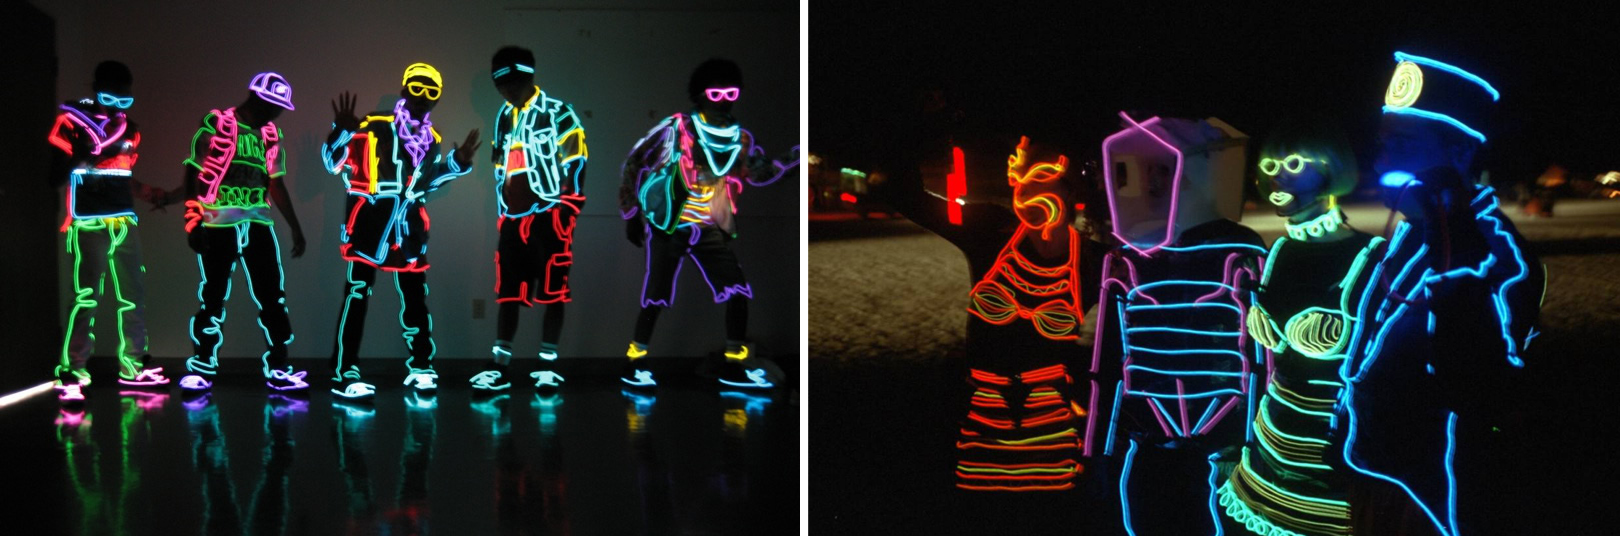 Exelent Electroluminescent Wire For Clothing Ideas - Electrical and ...